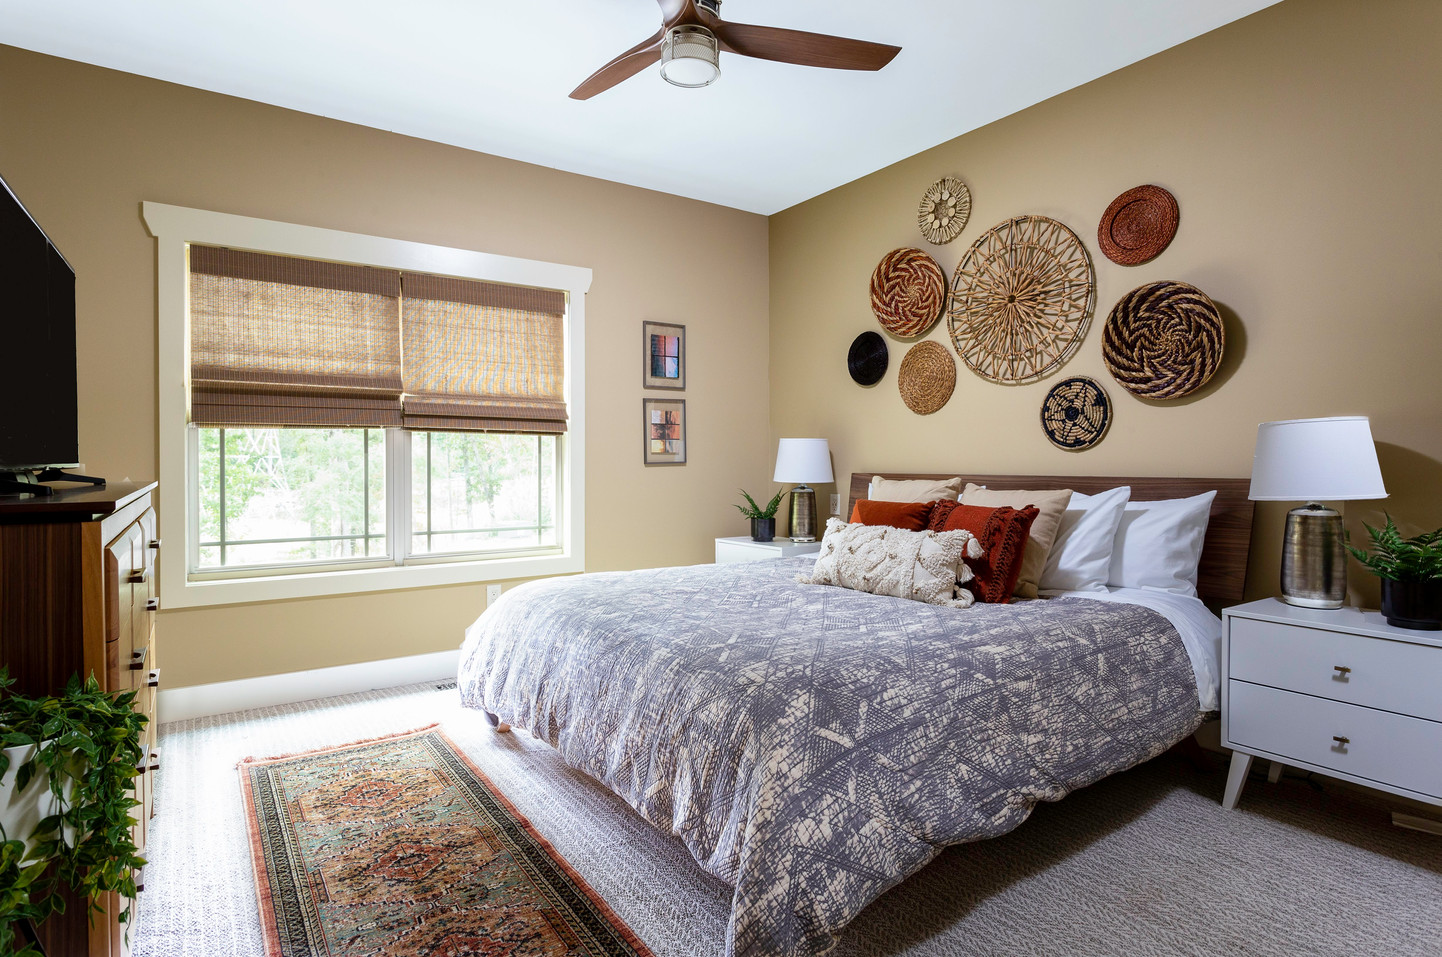 King-sized sleep number bed in this vacation rental